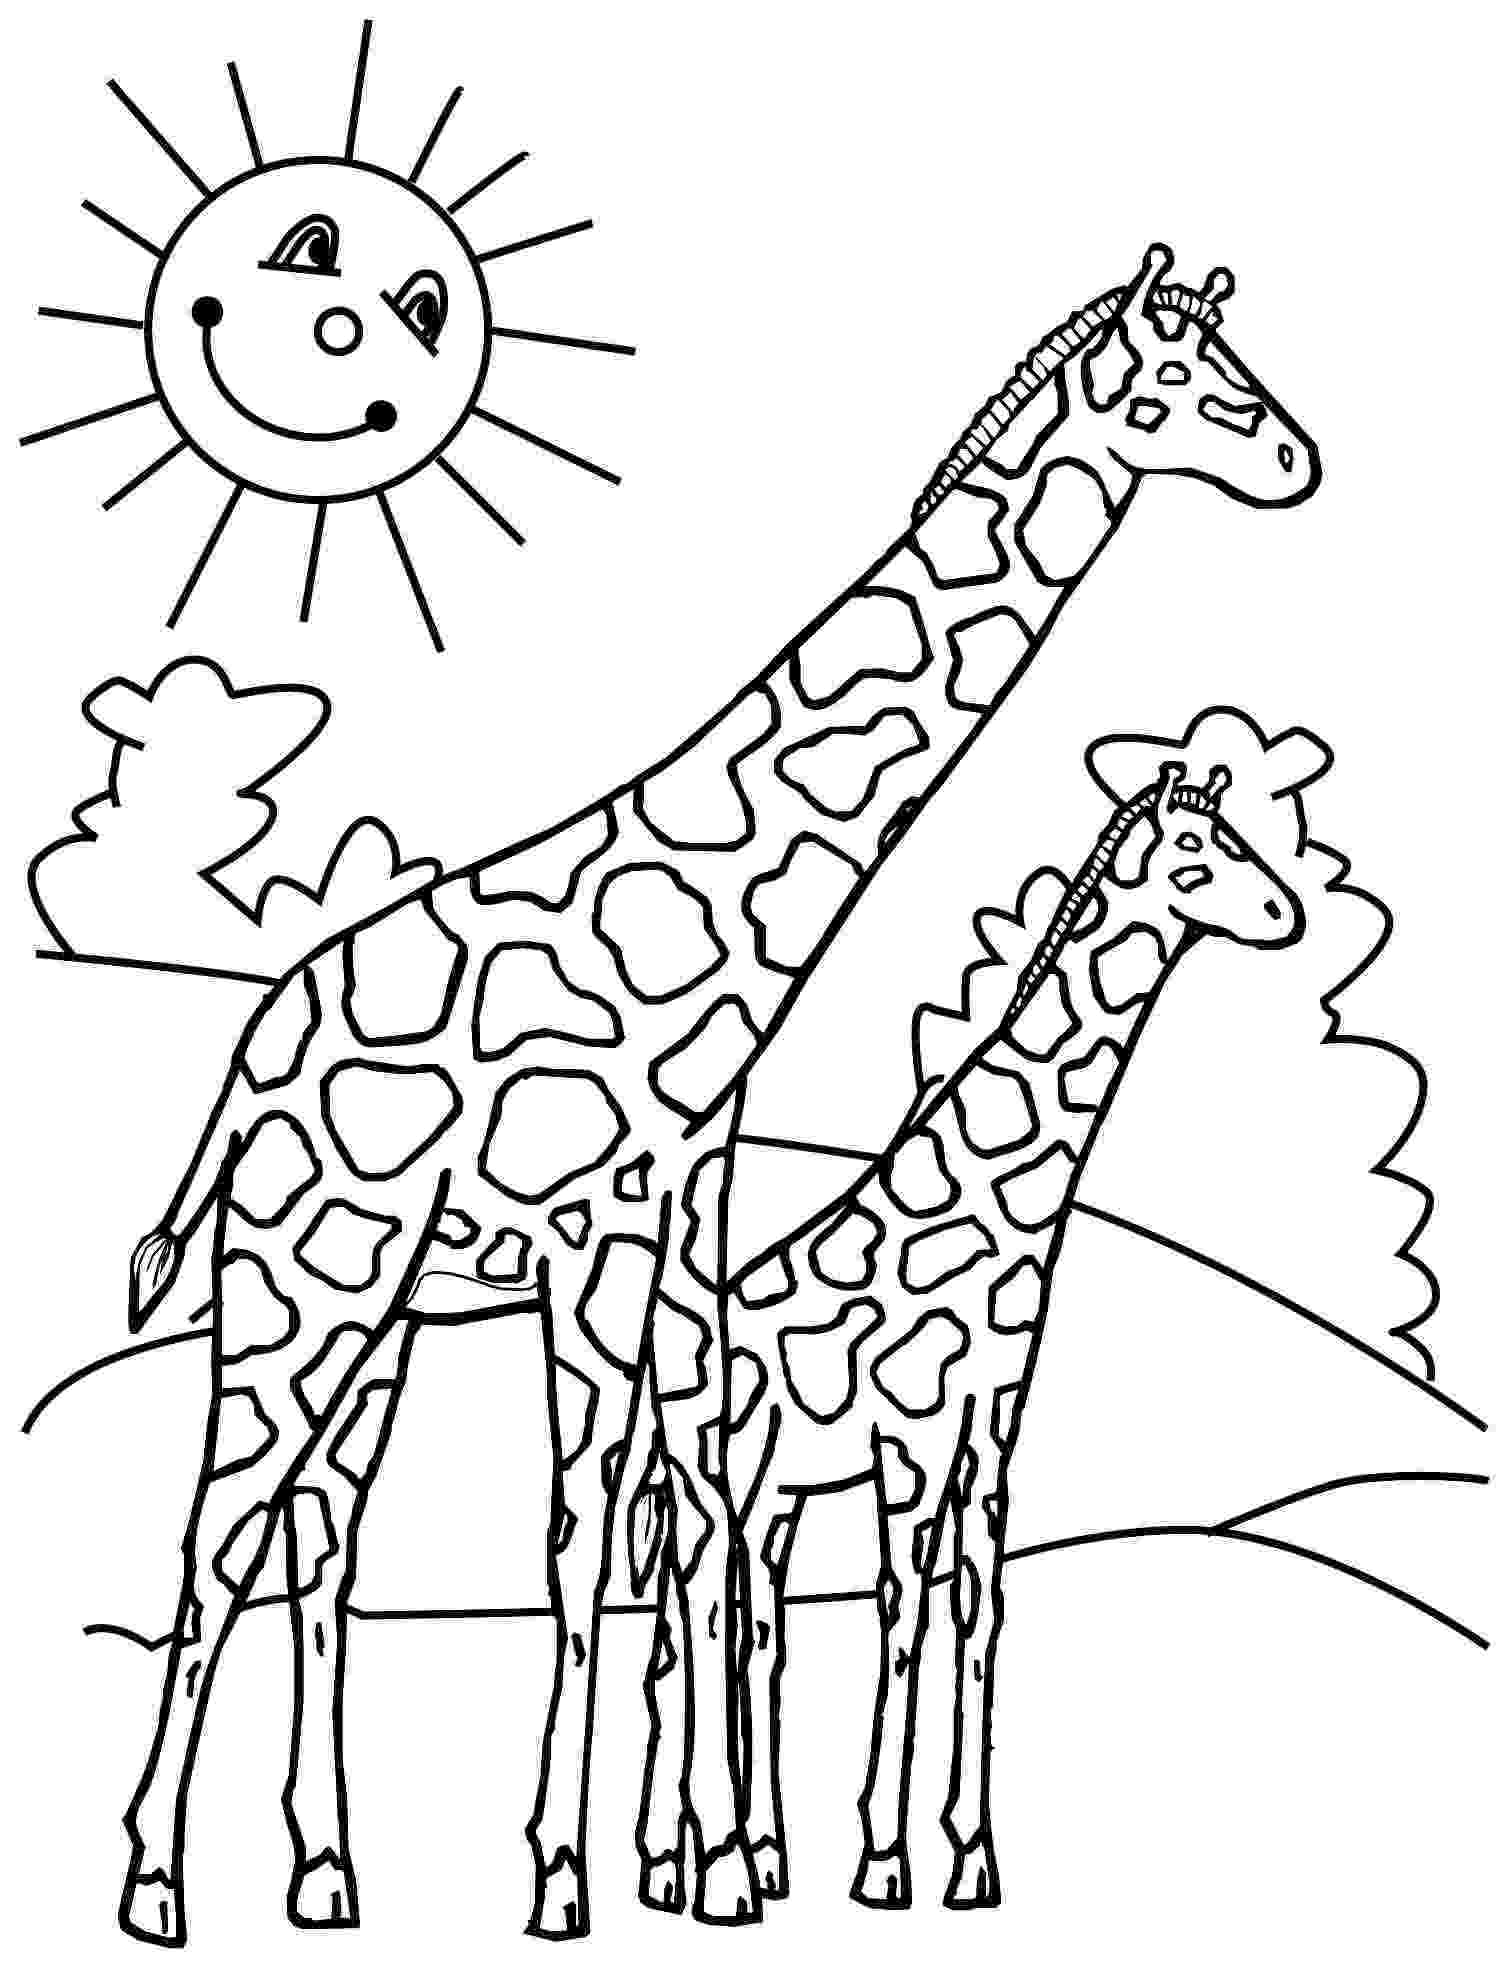 coloring pages for free pattern animal coloring pages download and print for free for free pages coloring